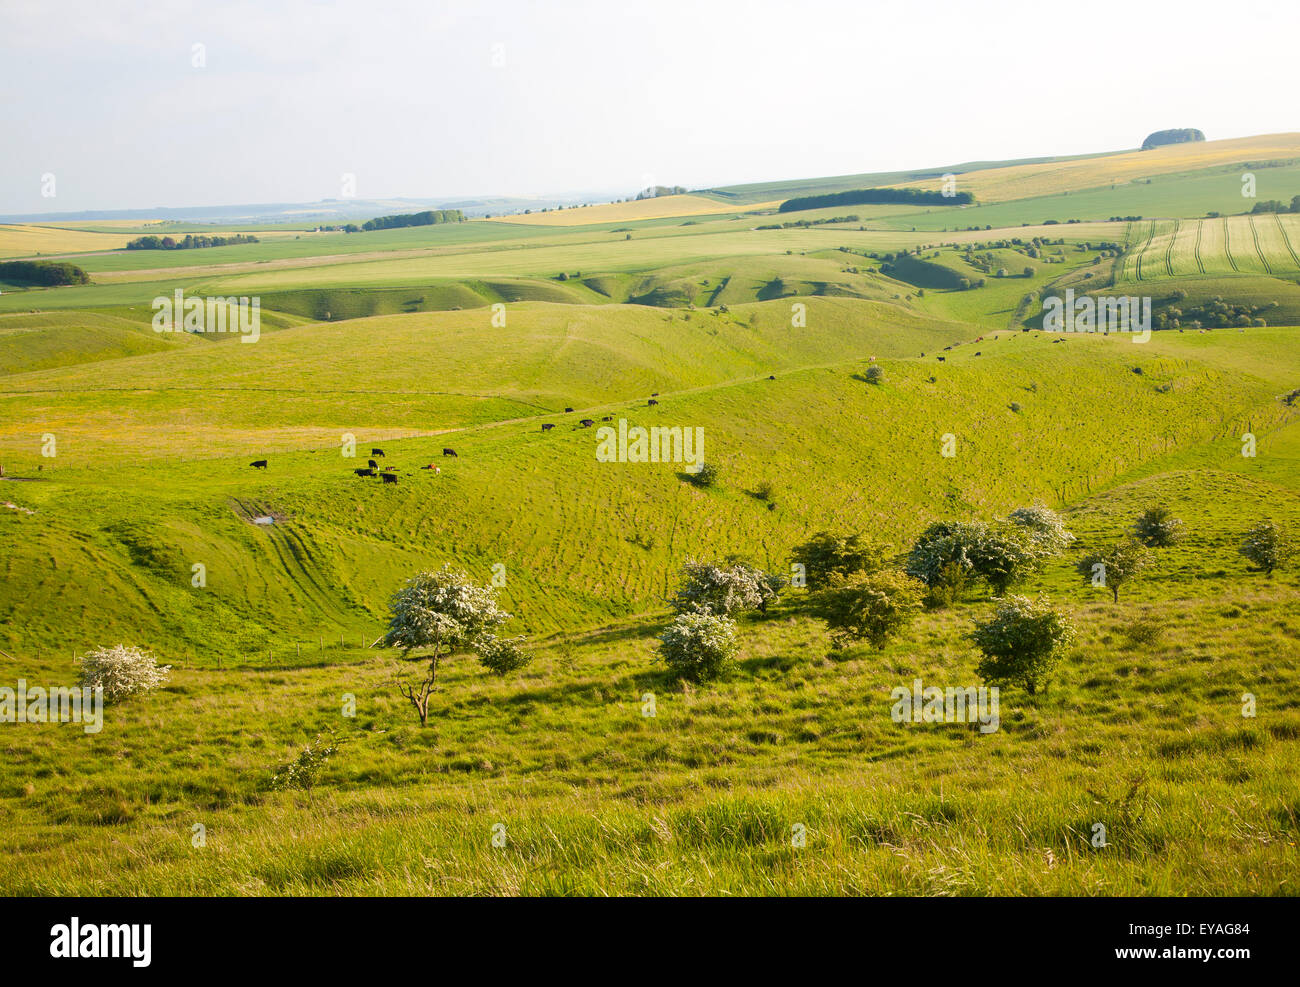 Rolling hills and dry valleys upland chalk landscape, form Cherhiil Down, Wiltshire, England, UK - Stock Image